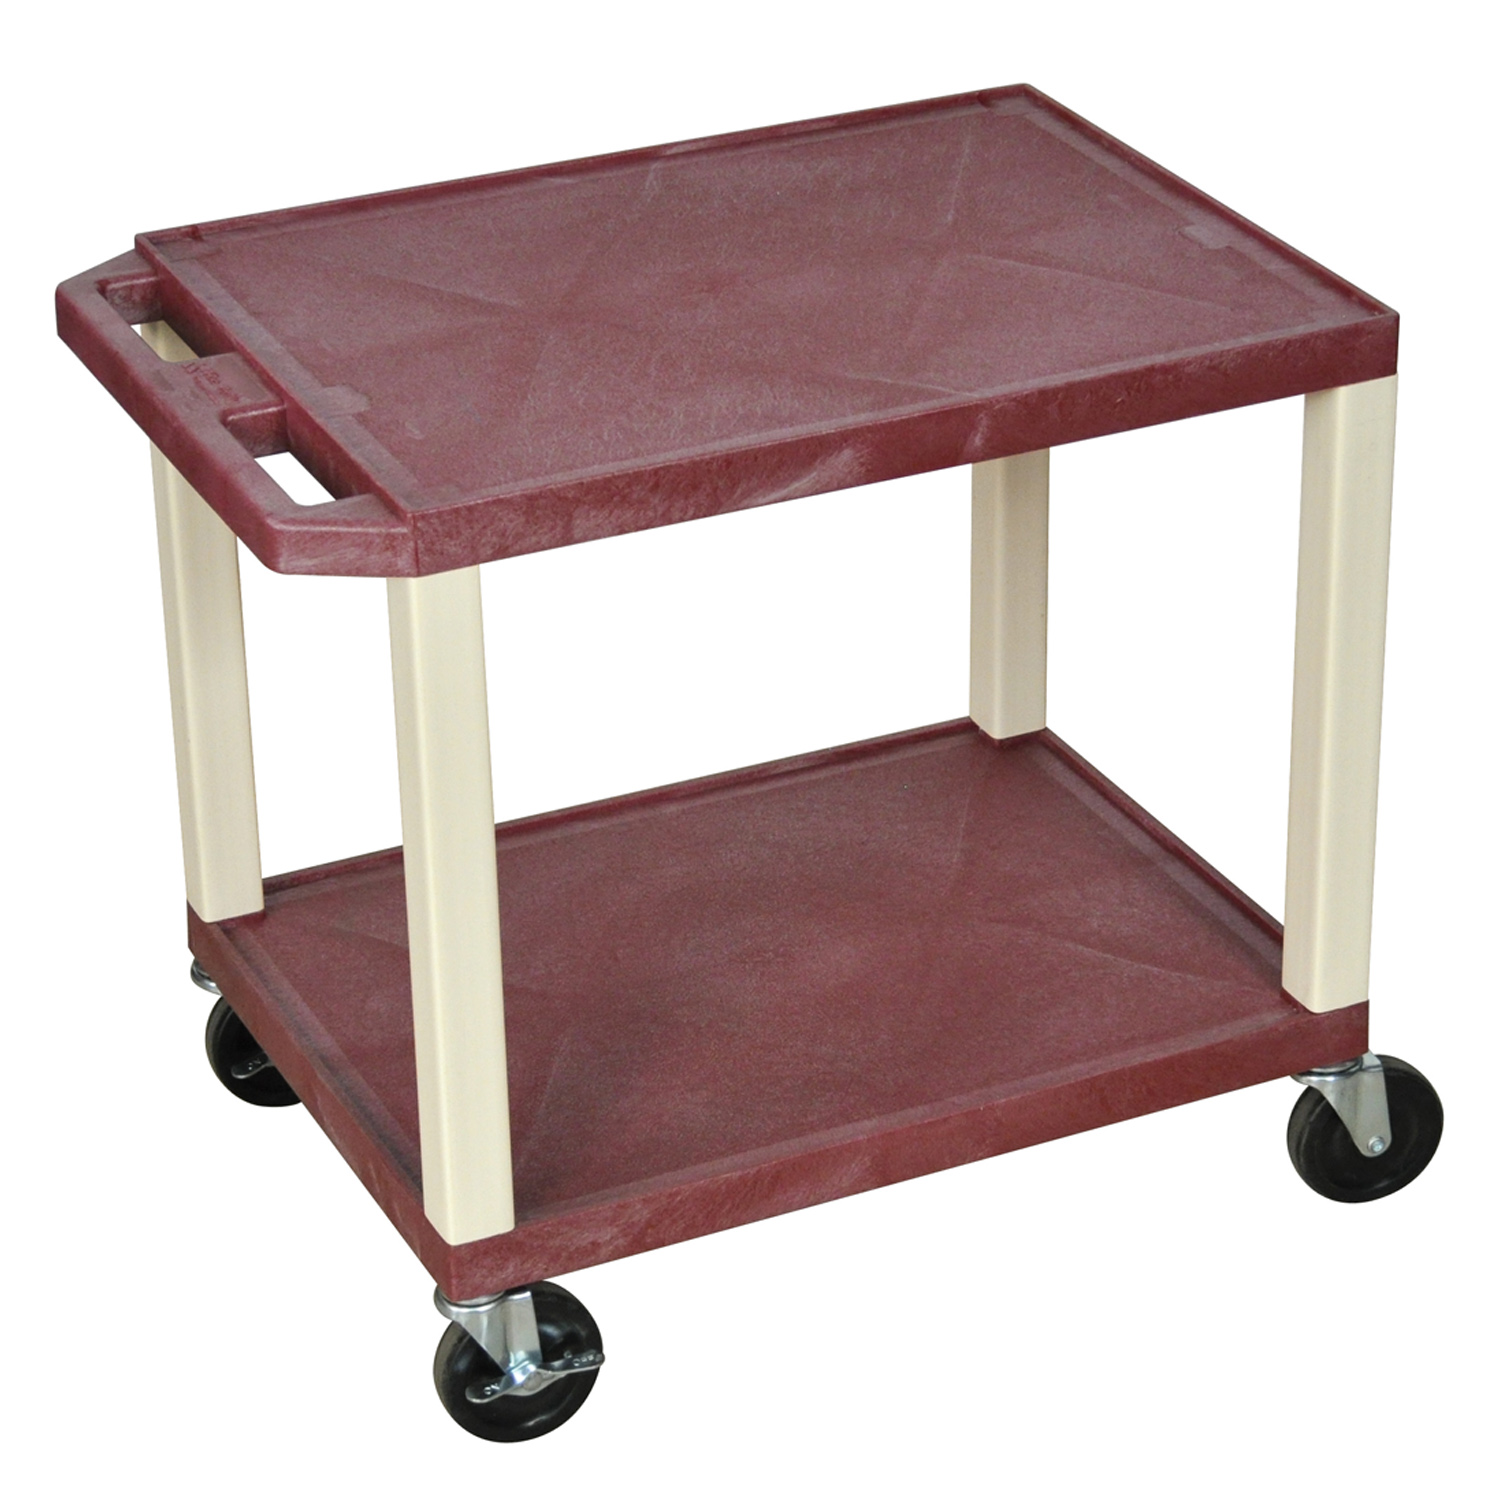 Luxor Audio Visual Equipment Storage Cart with 2 Shelves and Putty Legs